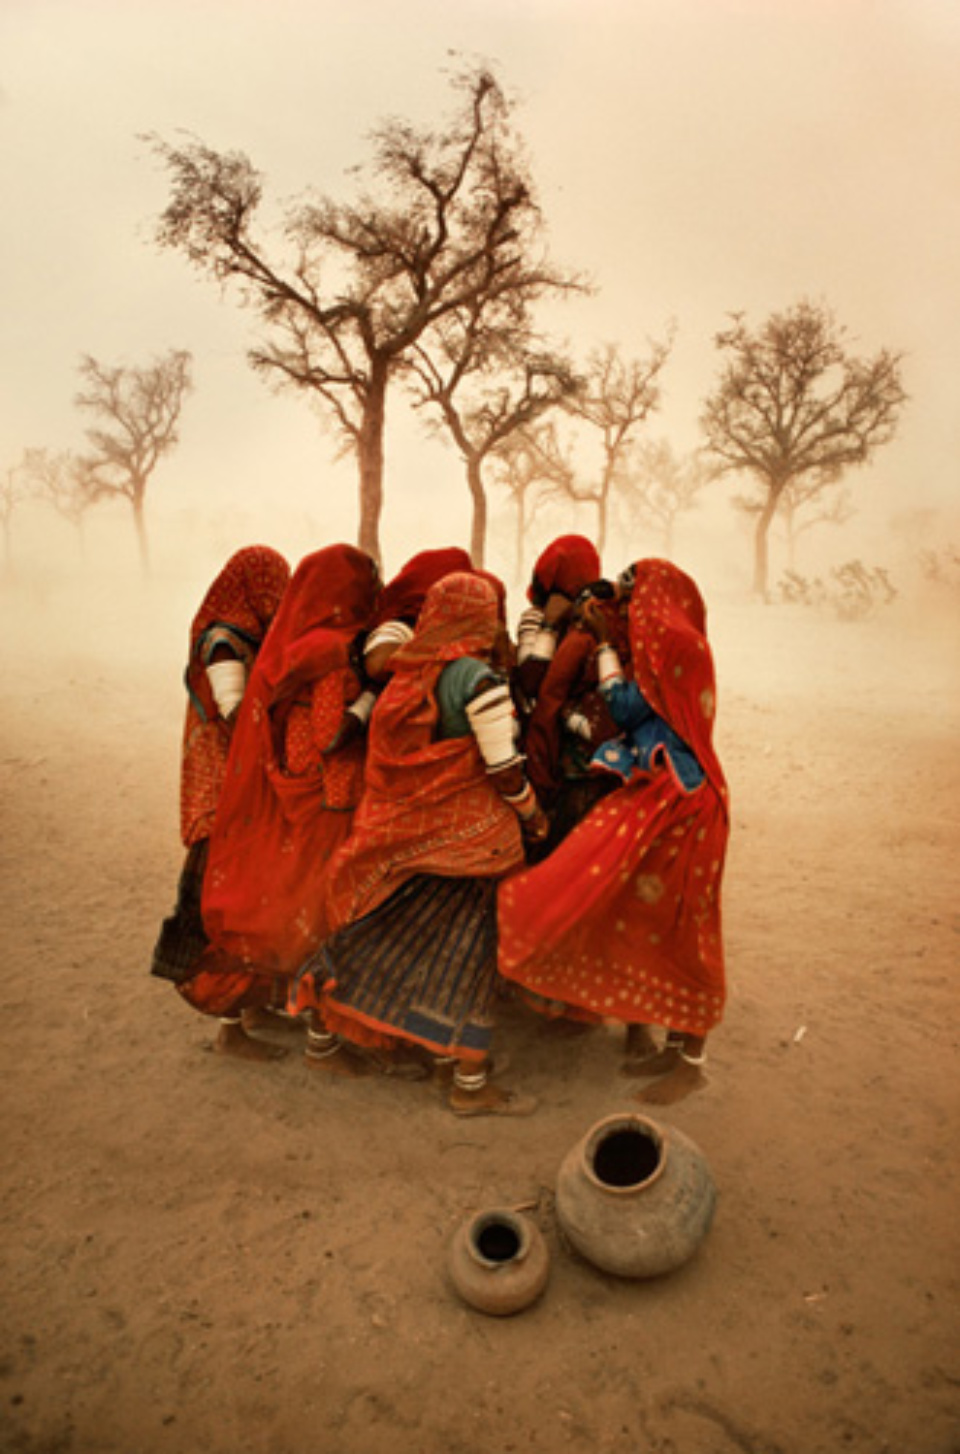 Steve McCurry: Dust Storm Rajasthan, India, 1983 Signed, titled, dated and numbered on verso C-print 60 x 50 cm // 152 x 101 cm Editioned